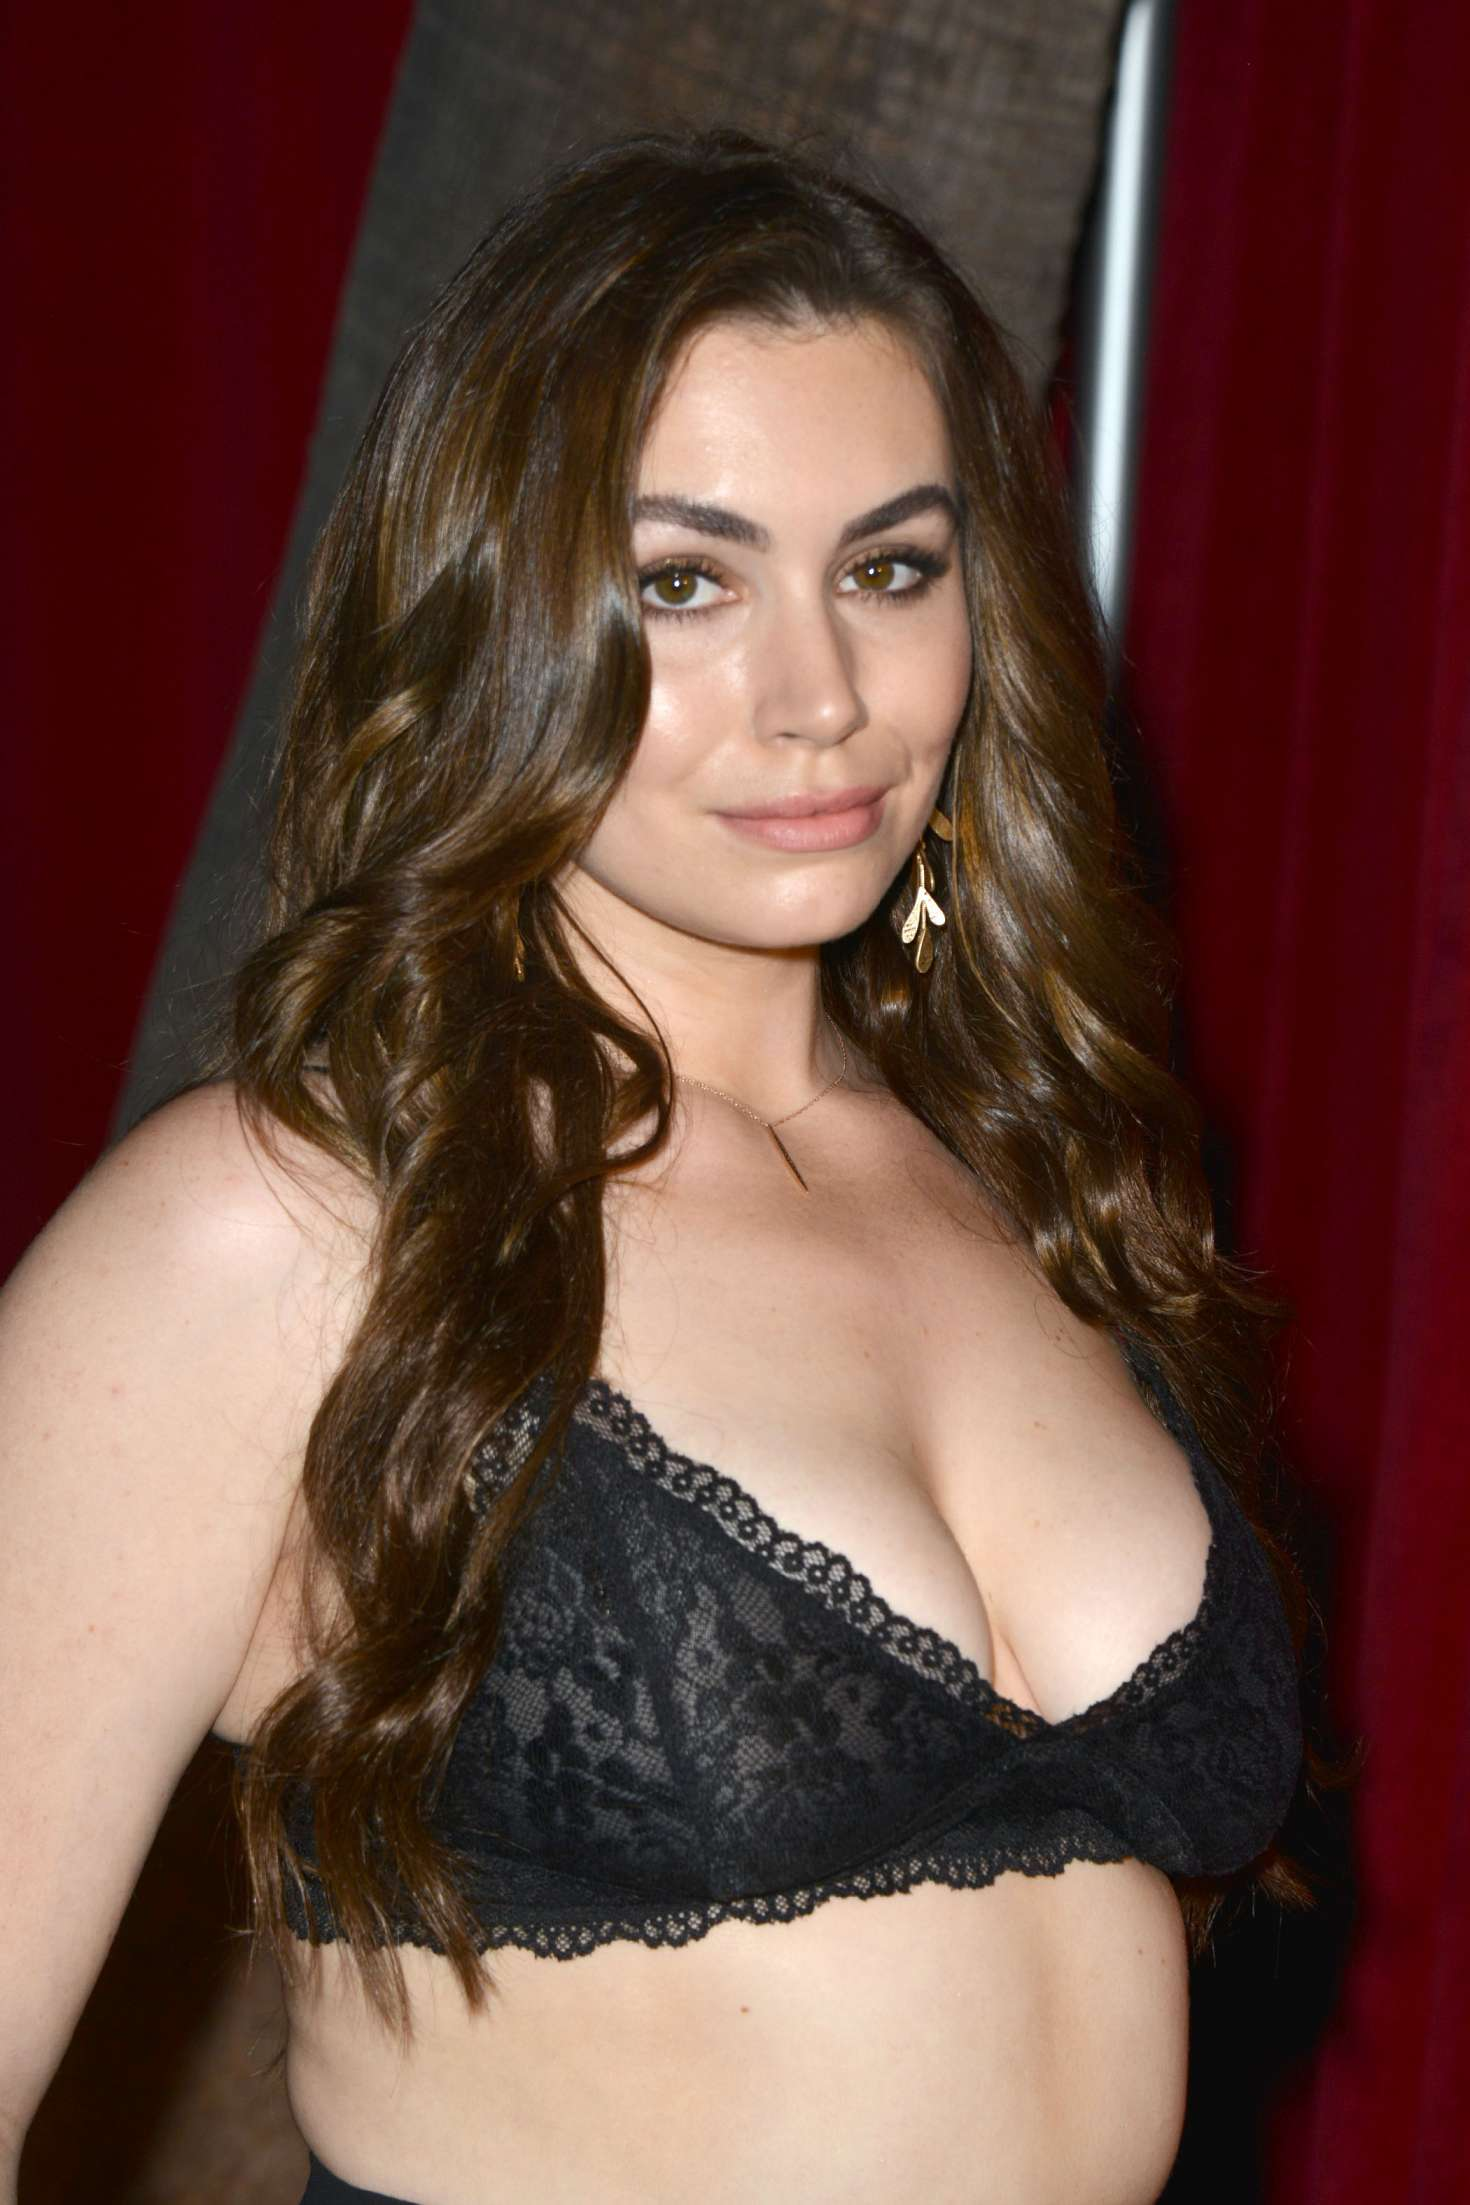 Hot Sophie Simmons nude (23 foto and video), Tits, Leaked, Selfie, cameltoe 2019